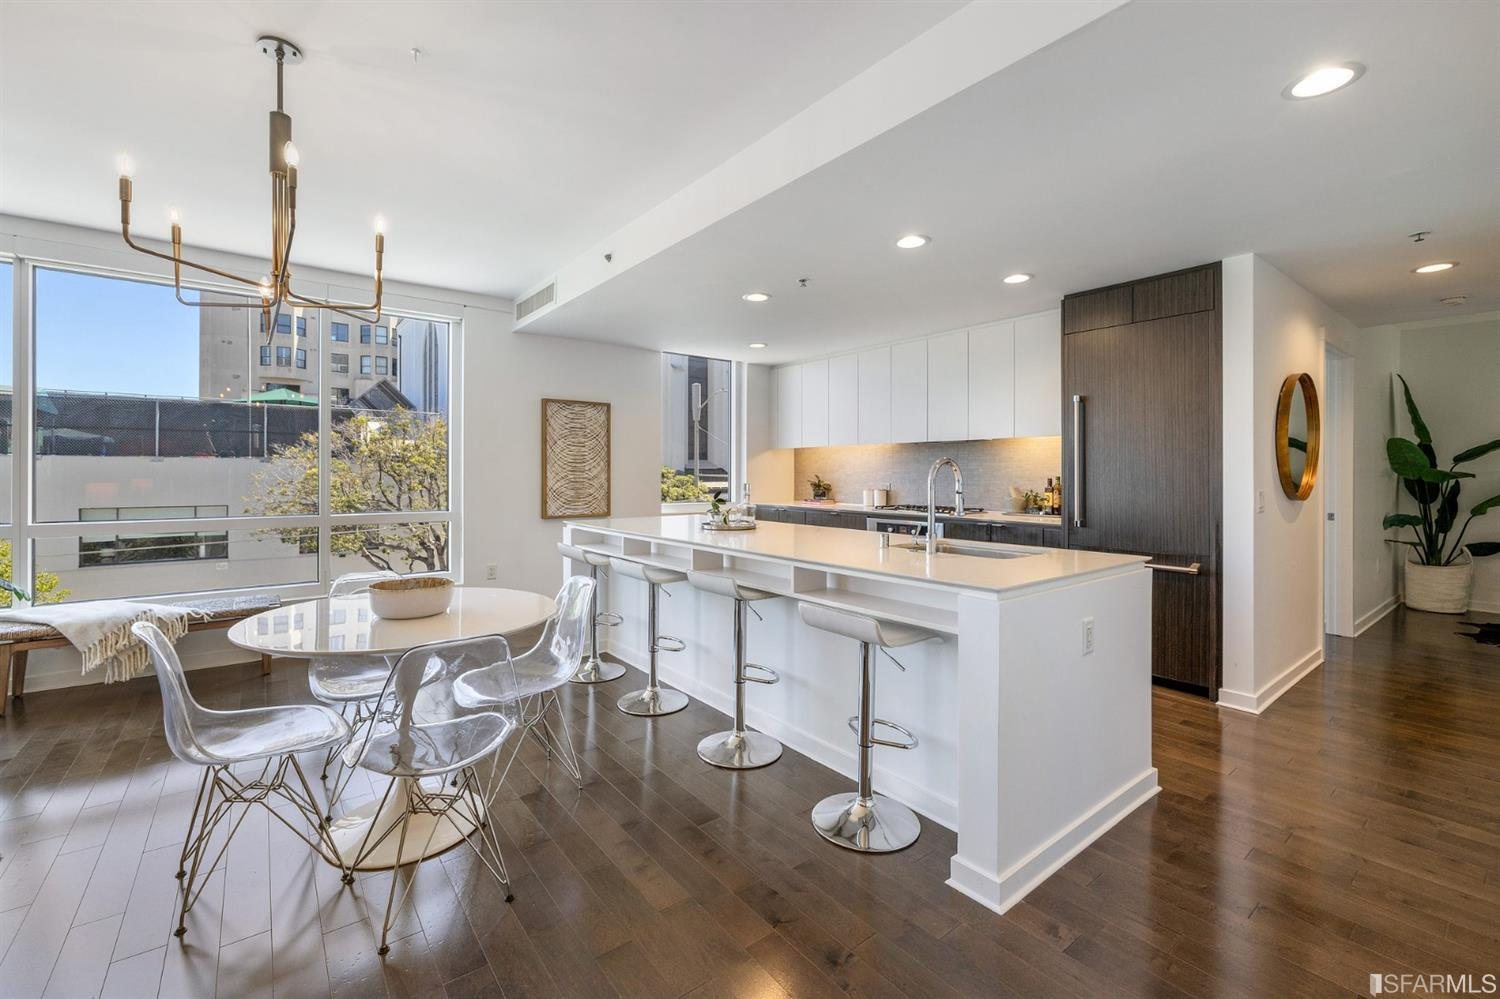 Welcome to The Marlow. Built in 2014, The Marlow is situated at the juncture of three Prime neighborhoods, Nob Hill, Russian Hill, and Pacific Heights. Residence 211 is the largest 2 bedroom, 2 bathroom + den floor plan they offer. Beaming with sunlight, this bright and airy south facing unit checks all the boxes including a private patio, in-unit washer and dryer, deeded 1 car parking, generous closets with custom shelving and organizers, and central air and heating. The well-appointed open floor plan includes a chef's kitchen with top-of-the-line stainless steel appliances, wide-plank hardwood floors, and floor-to-ceiling windows. Marlow offers 98 Modern, Luxurious condominium residences in the heart of restaurants, nightlife, shopping, and culture. Residents enjoy amenities including a lobby attendant, landscaped communal courtyard, bocce ball court, BBQ area, and outdoor fire pit/lounge area, as well as close proximity to Muni lines.